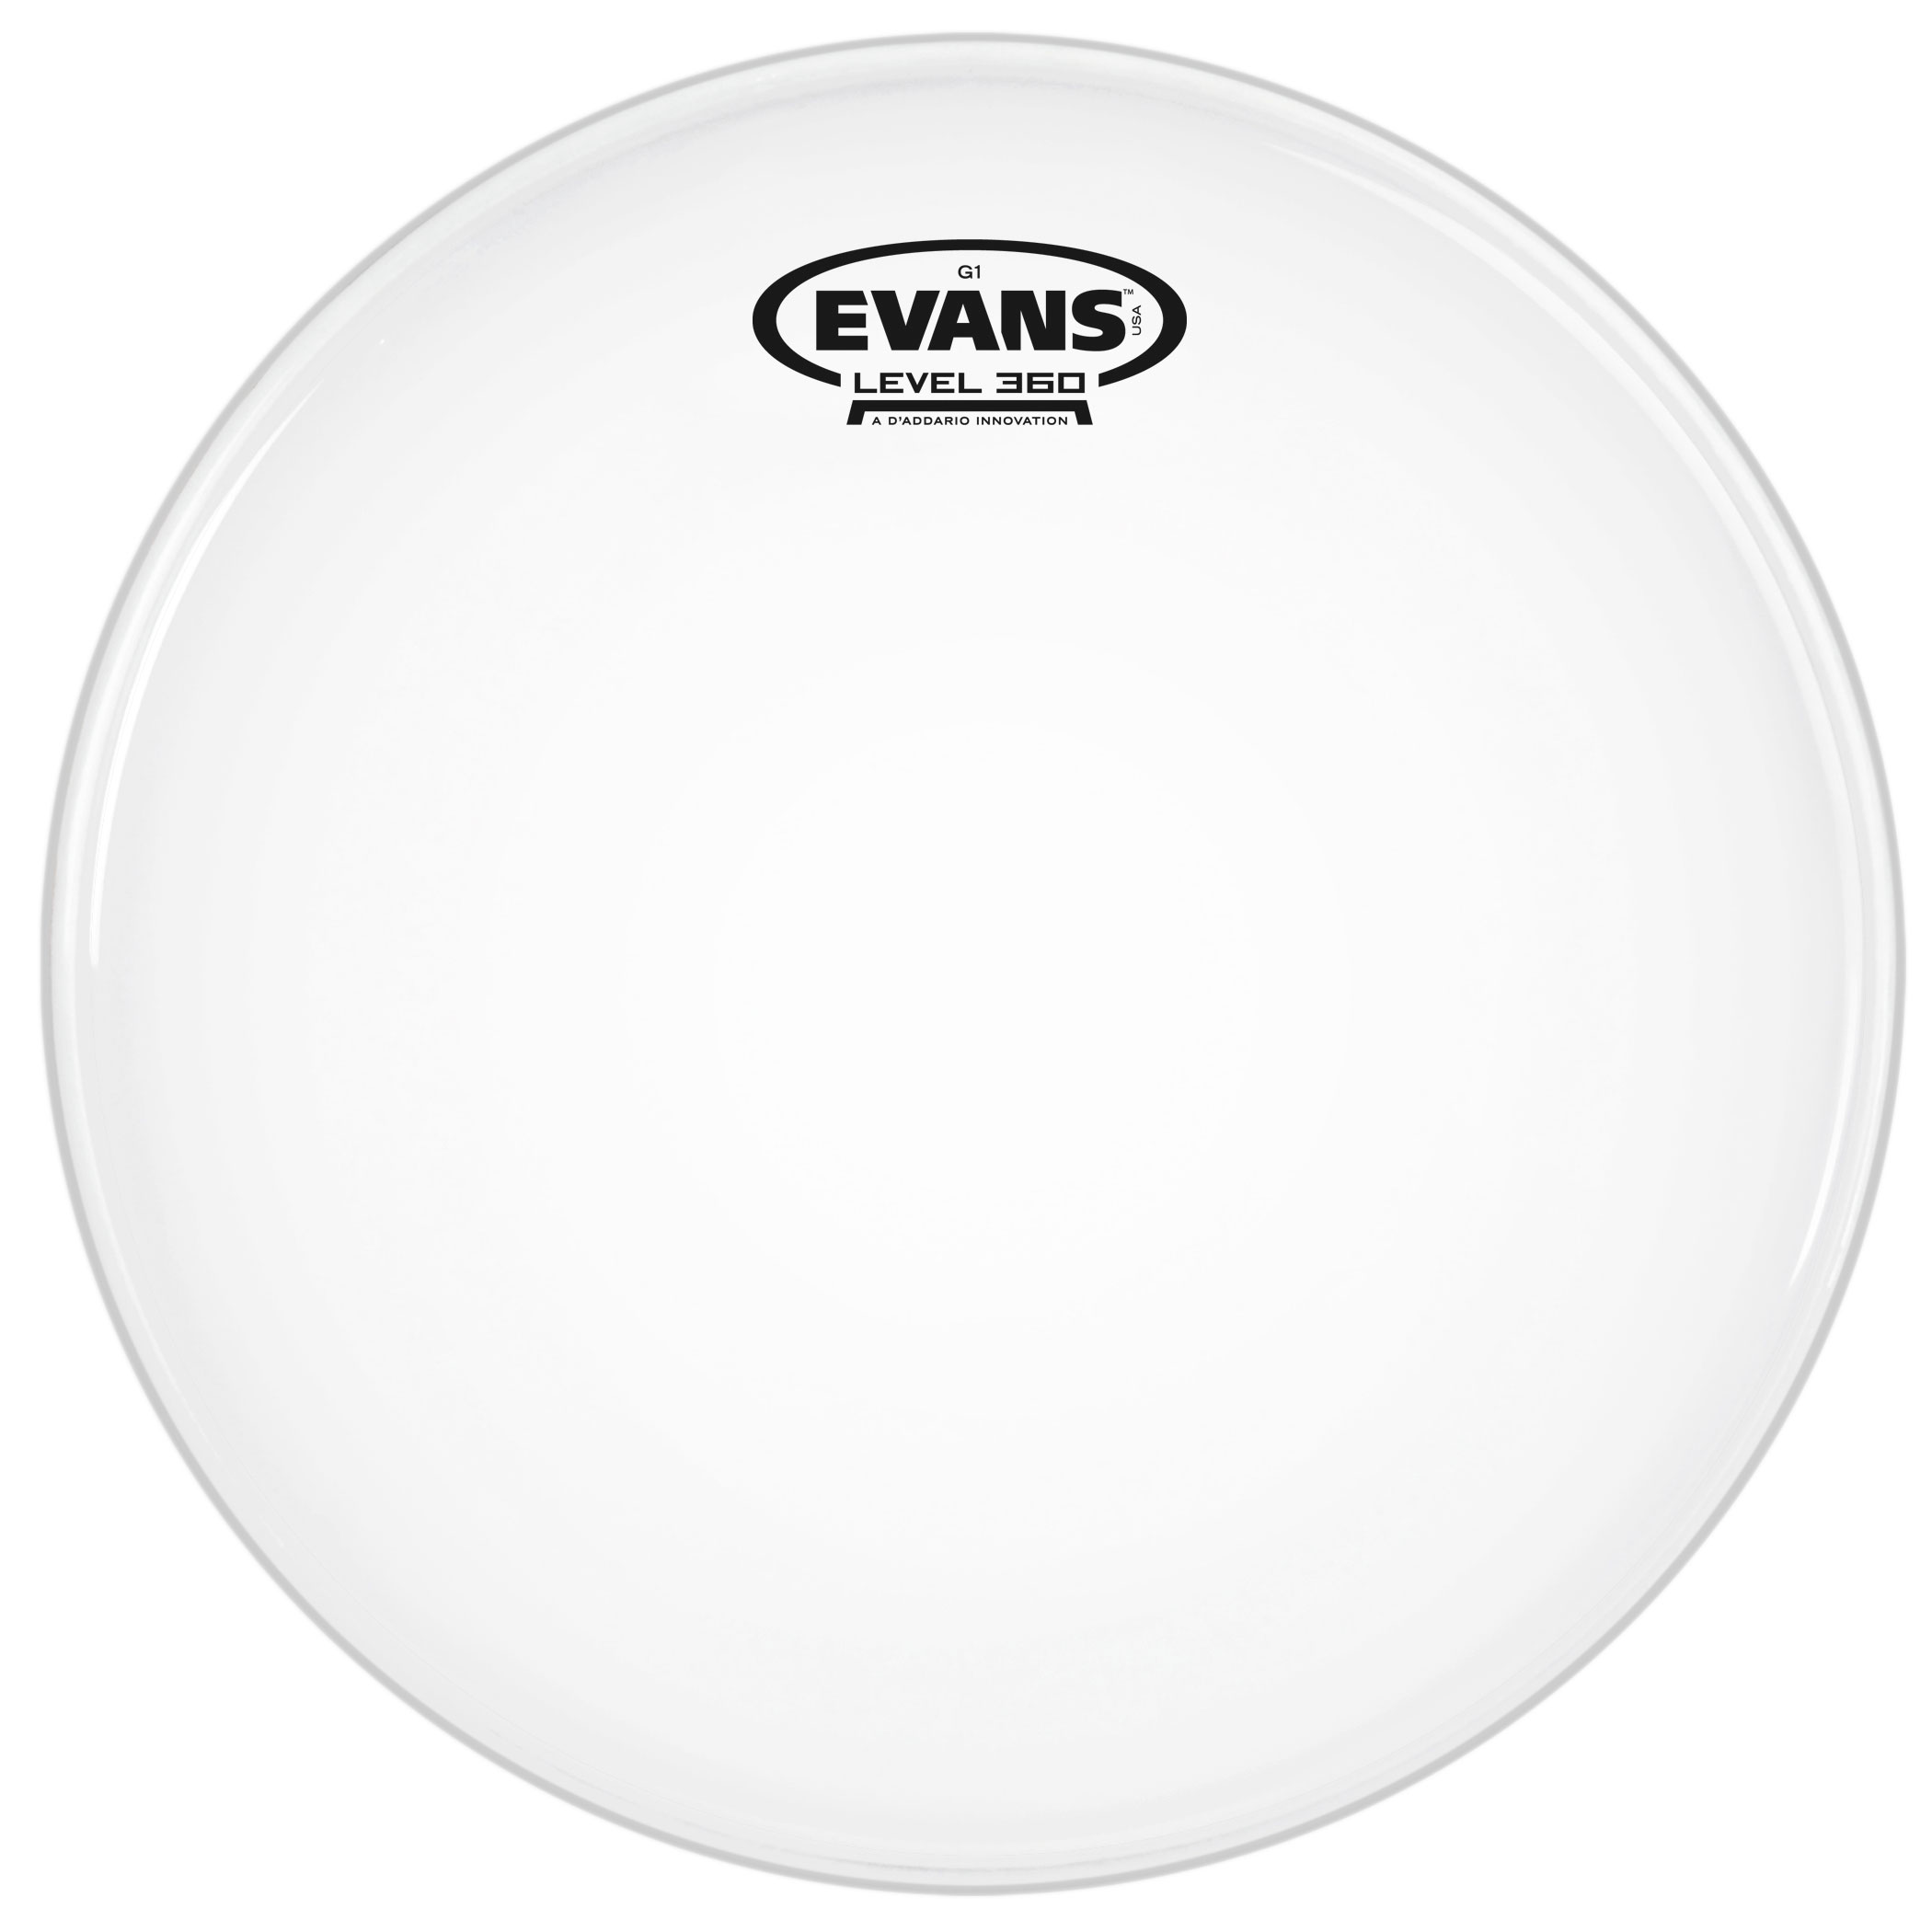 "Evans 15"" G1 Coated Head"